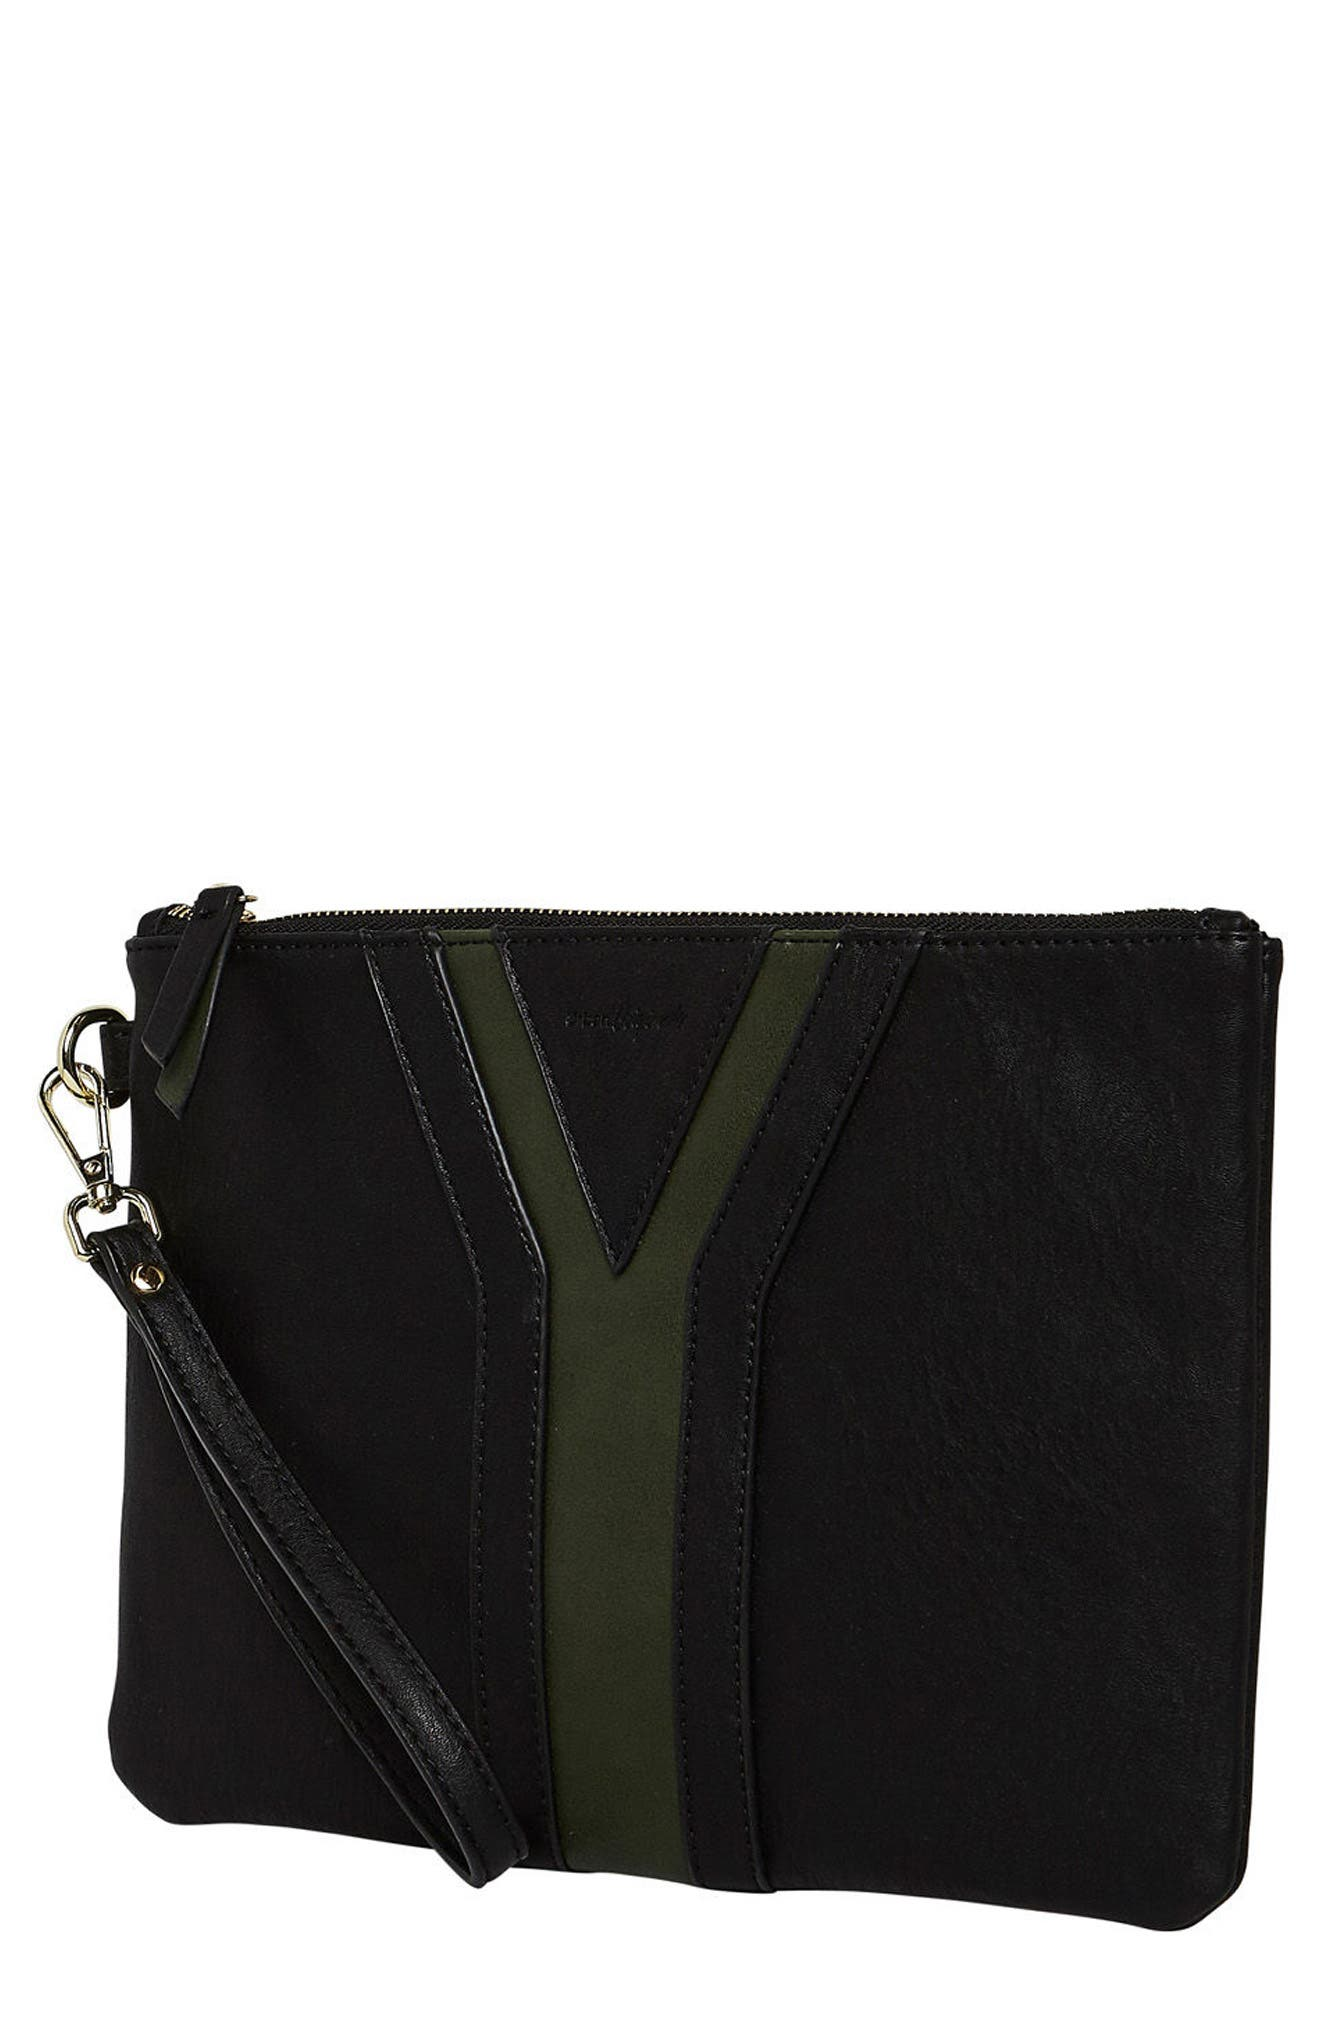 All She Wants Vegan Leather Clutch,                         Main,                         color,